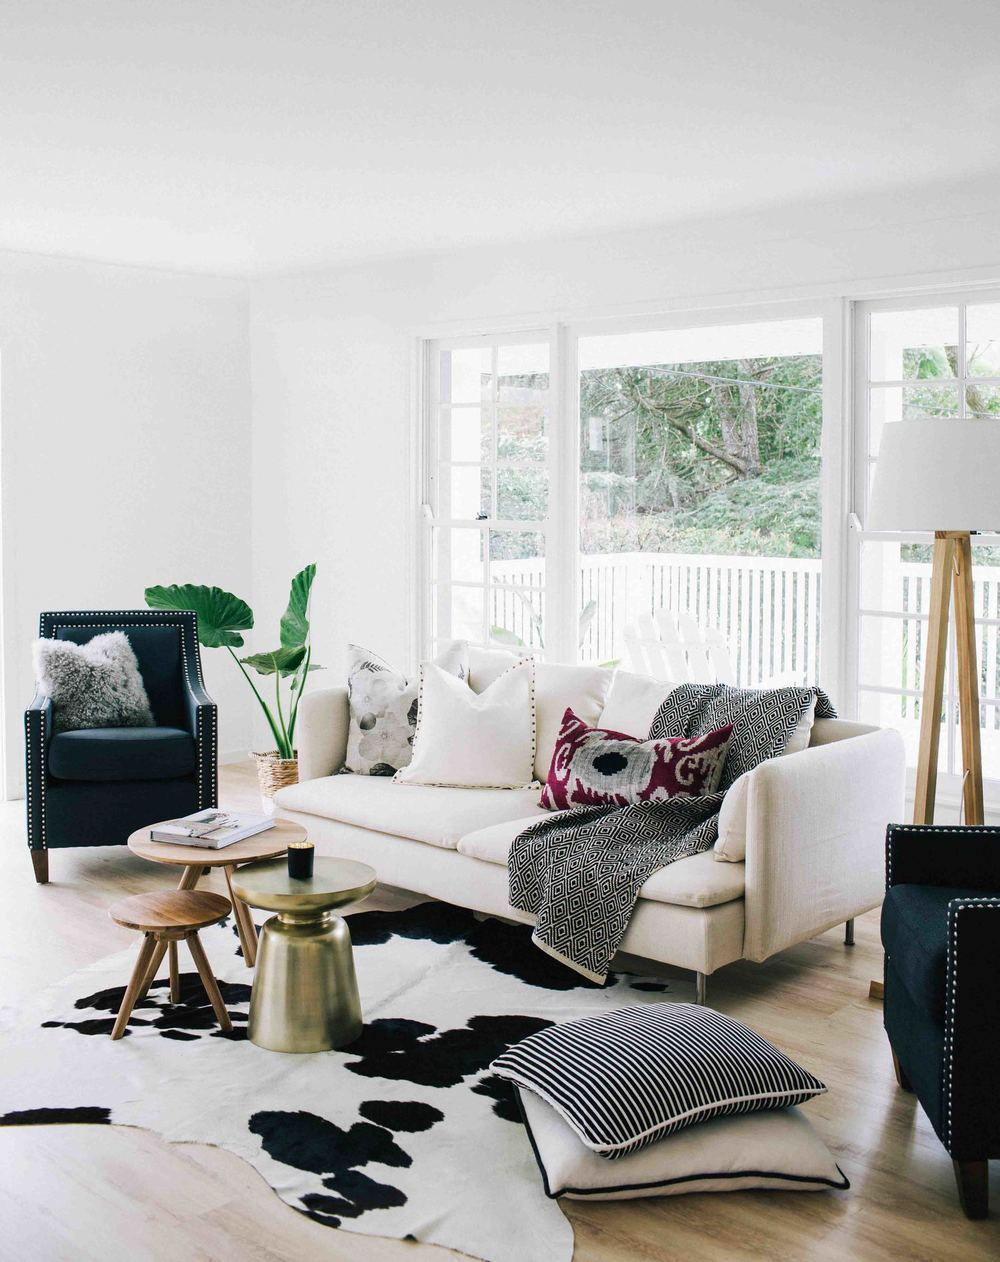 Living room with cream white couch and cowhide rug